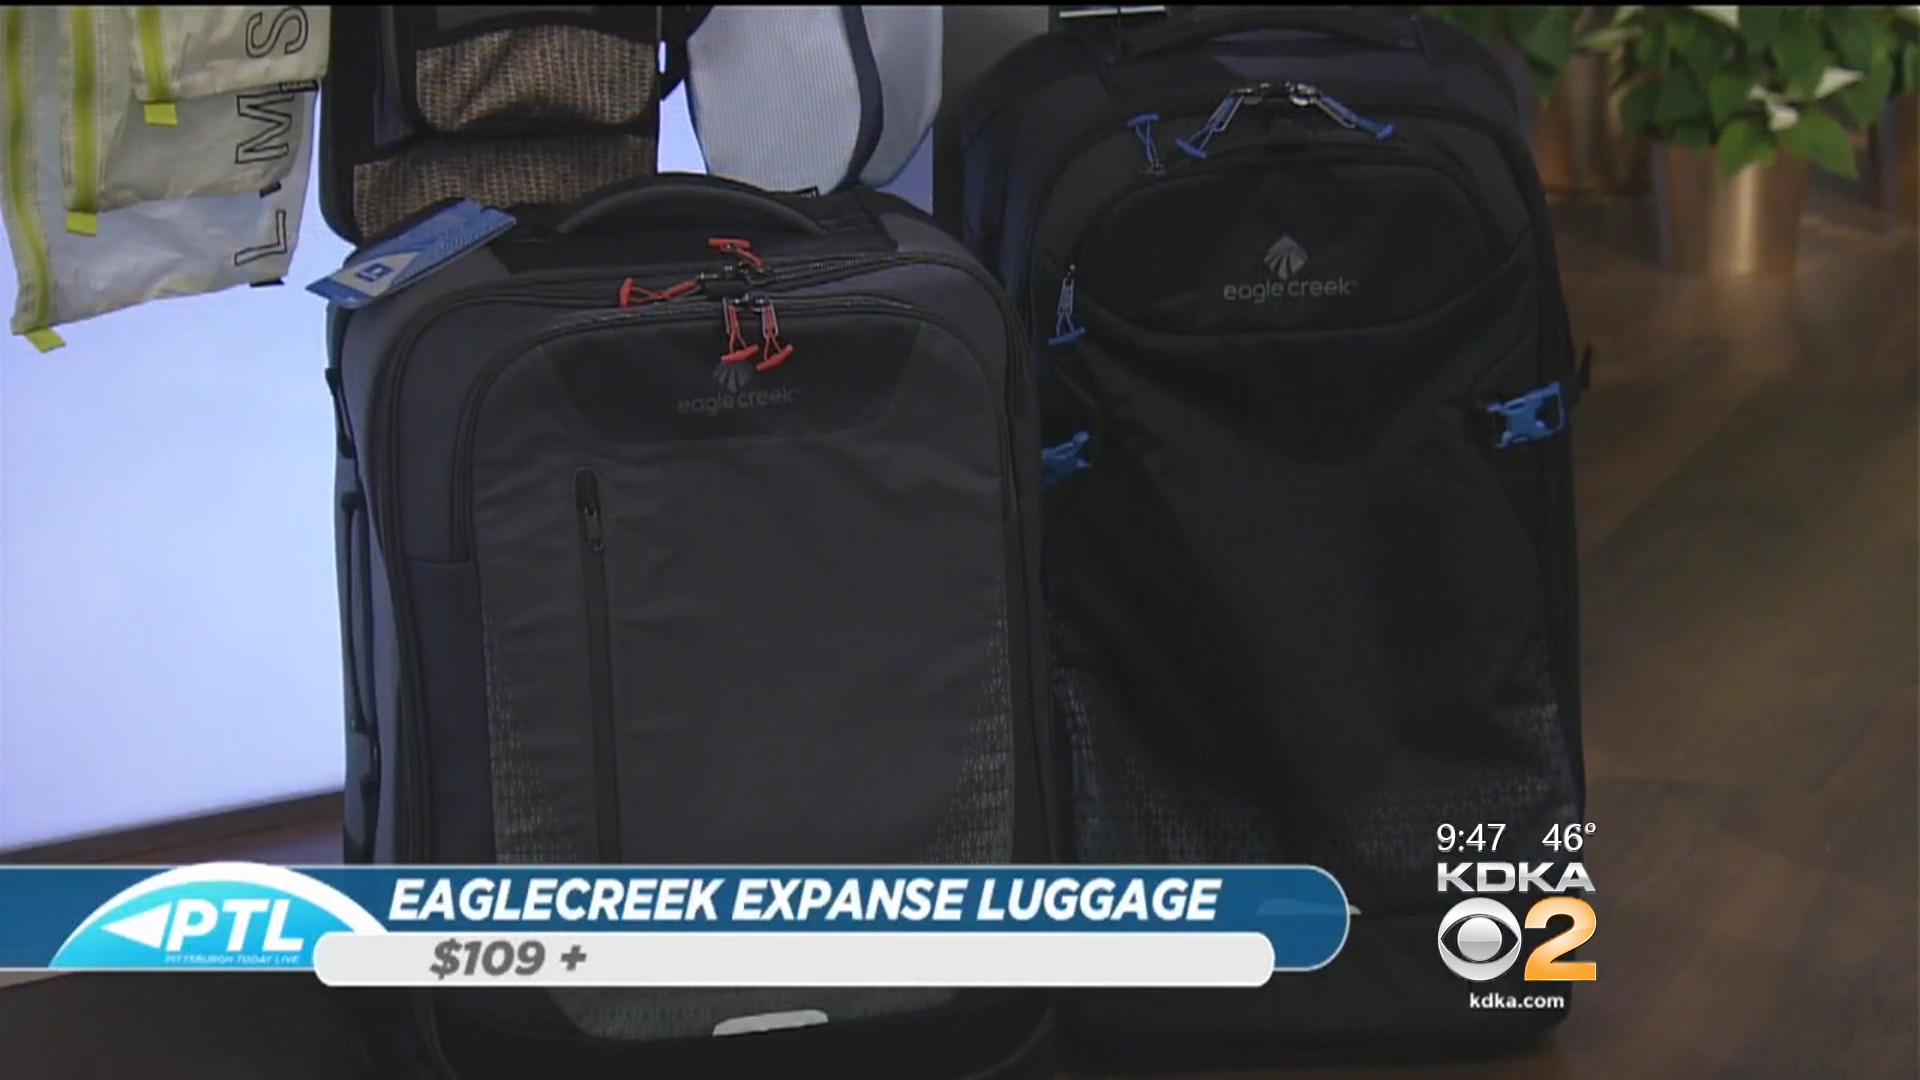 EAGLE CREEK EXPANSE LUGGAGE - Starts at $109Shop Now